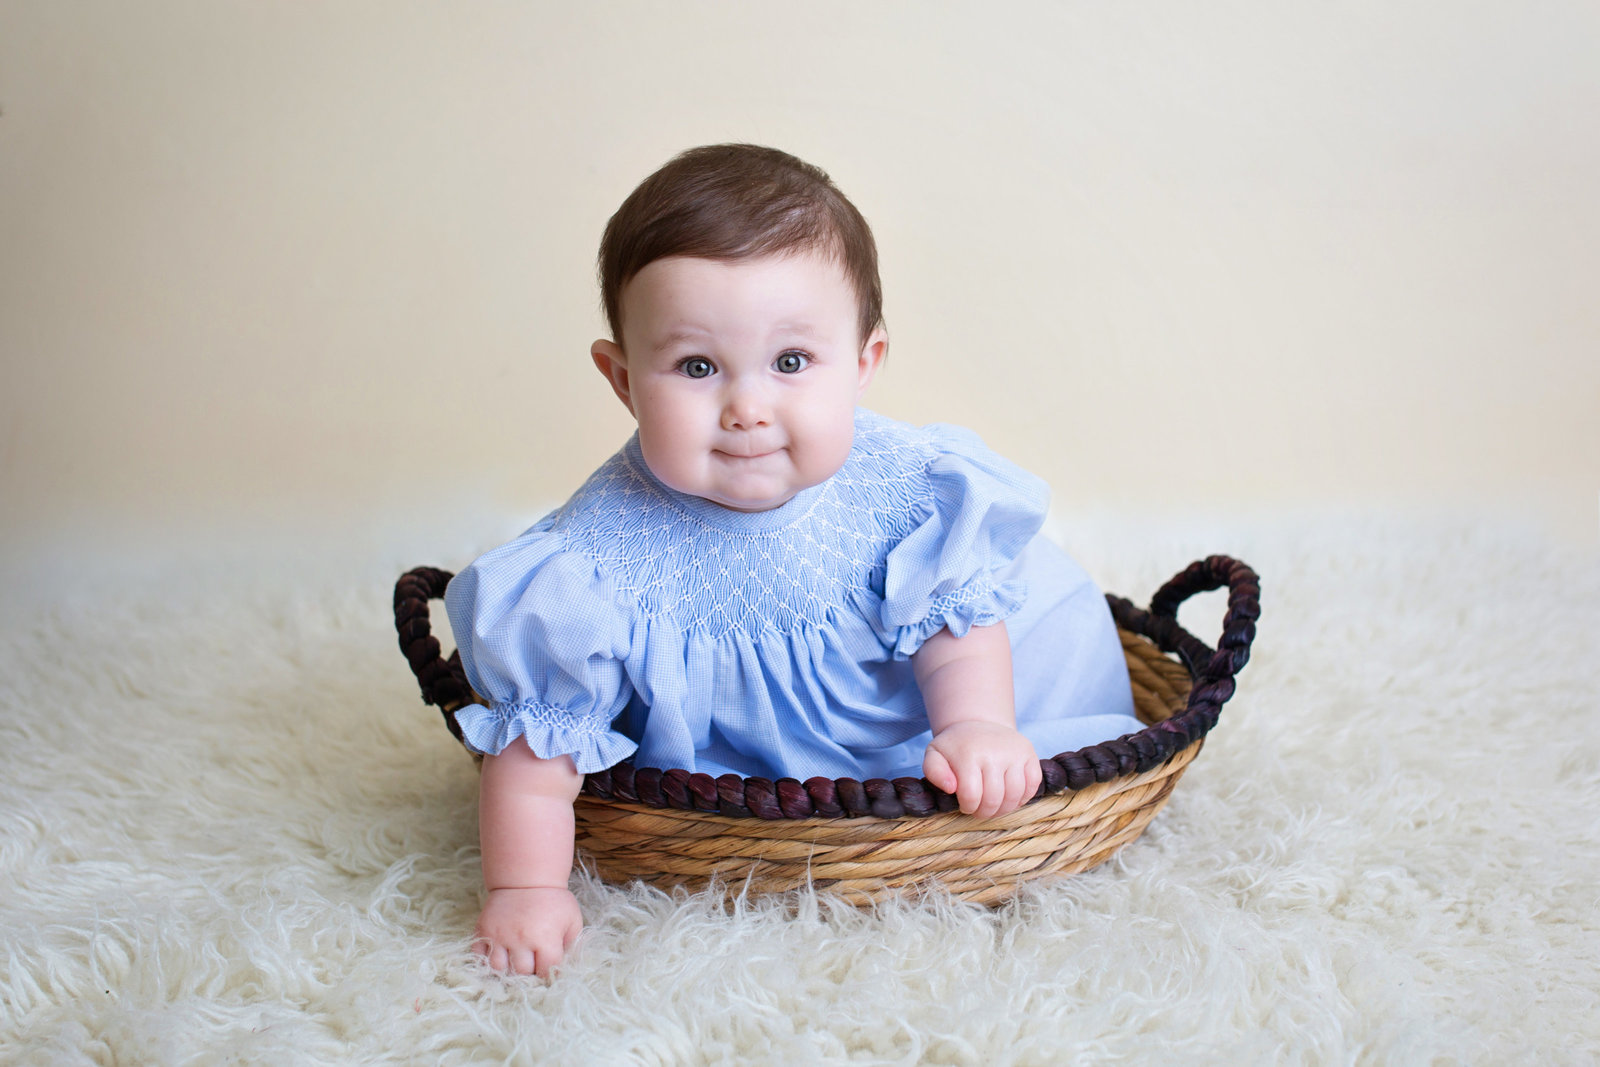 baby girl in blue dress sitting in a basket